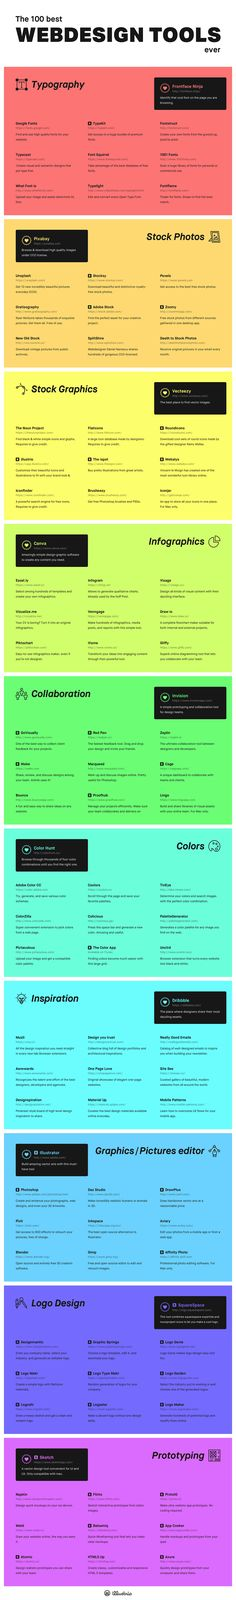 Designed by Illustrio, the following infographic features 100 of the best web design tools ever. From stock photos and typography, to prototyping and colours, t